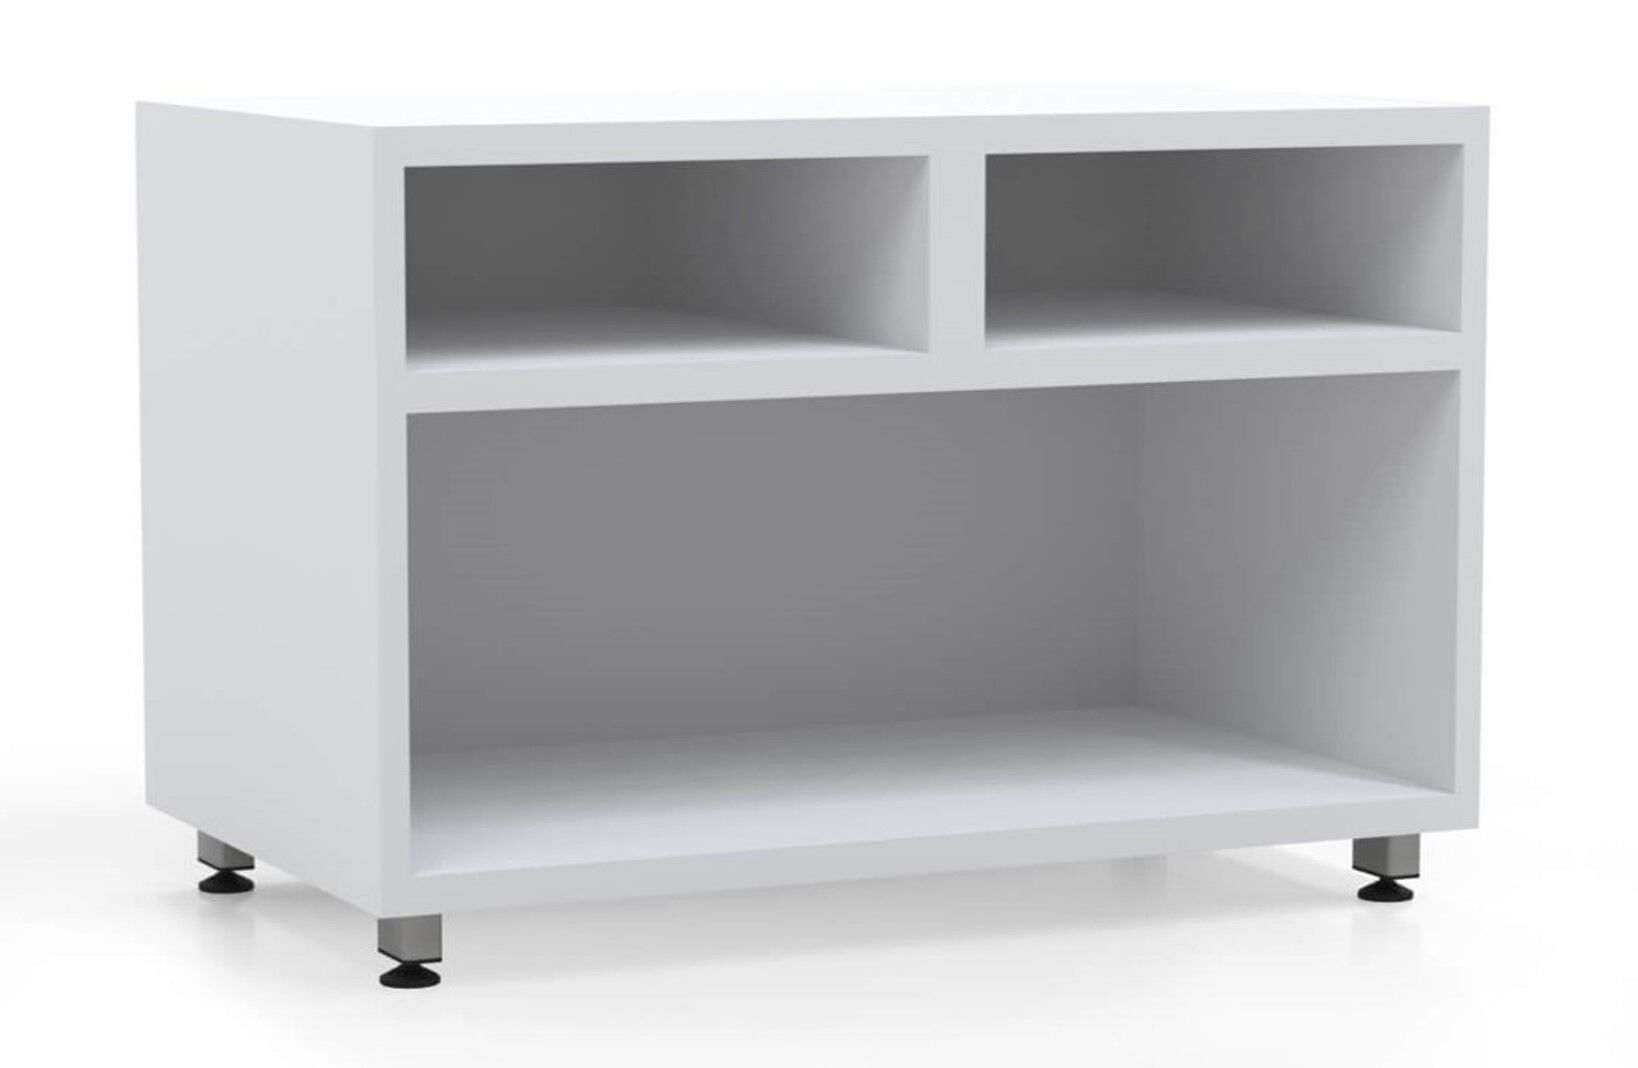 L shaped modern desk open storage container white_preview